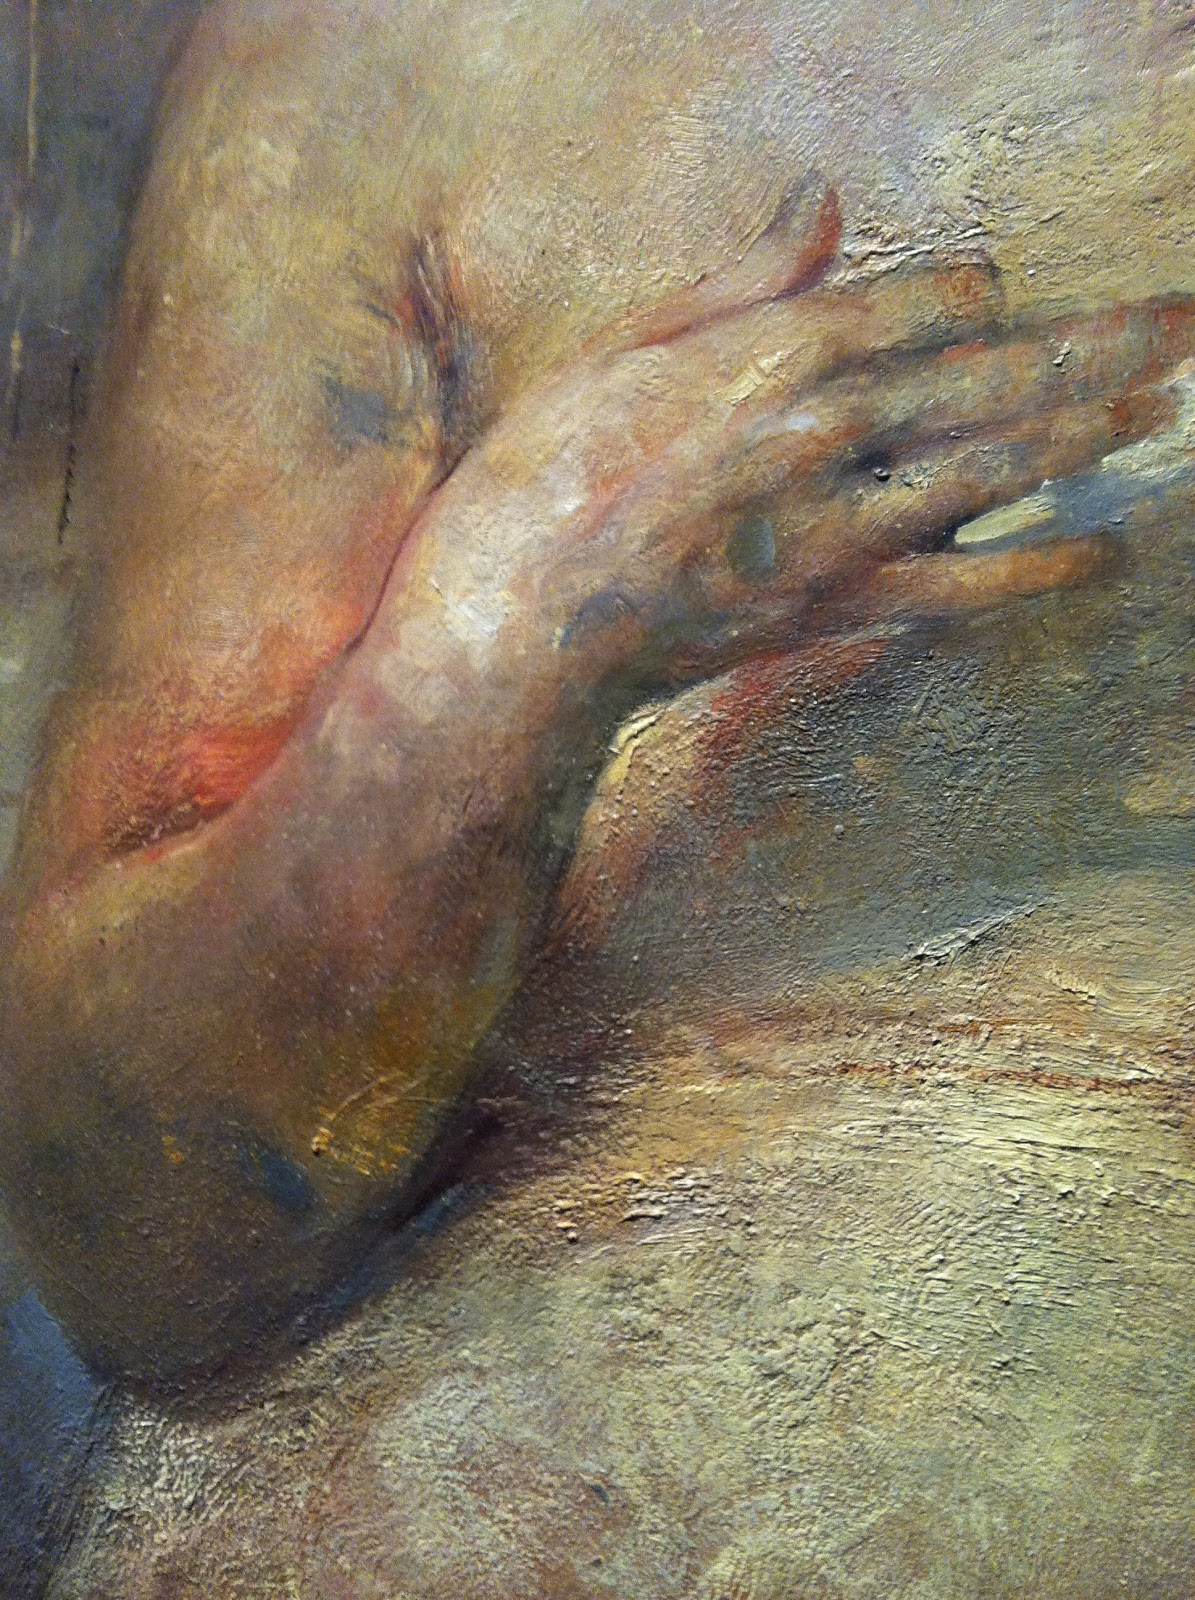 Mary Sauer Art Odd Nerdrum Opening At Forum Gallery March